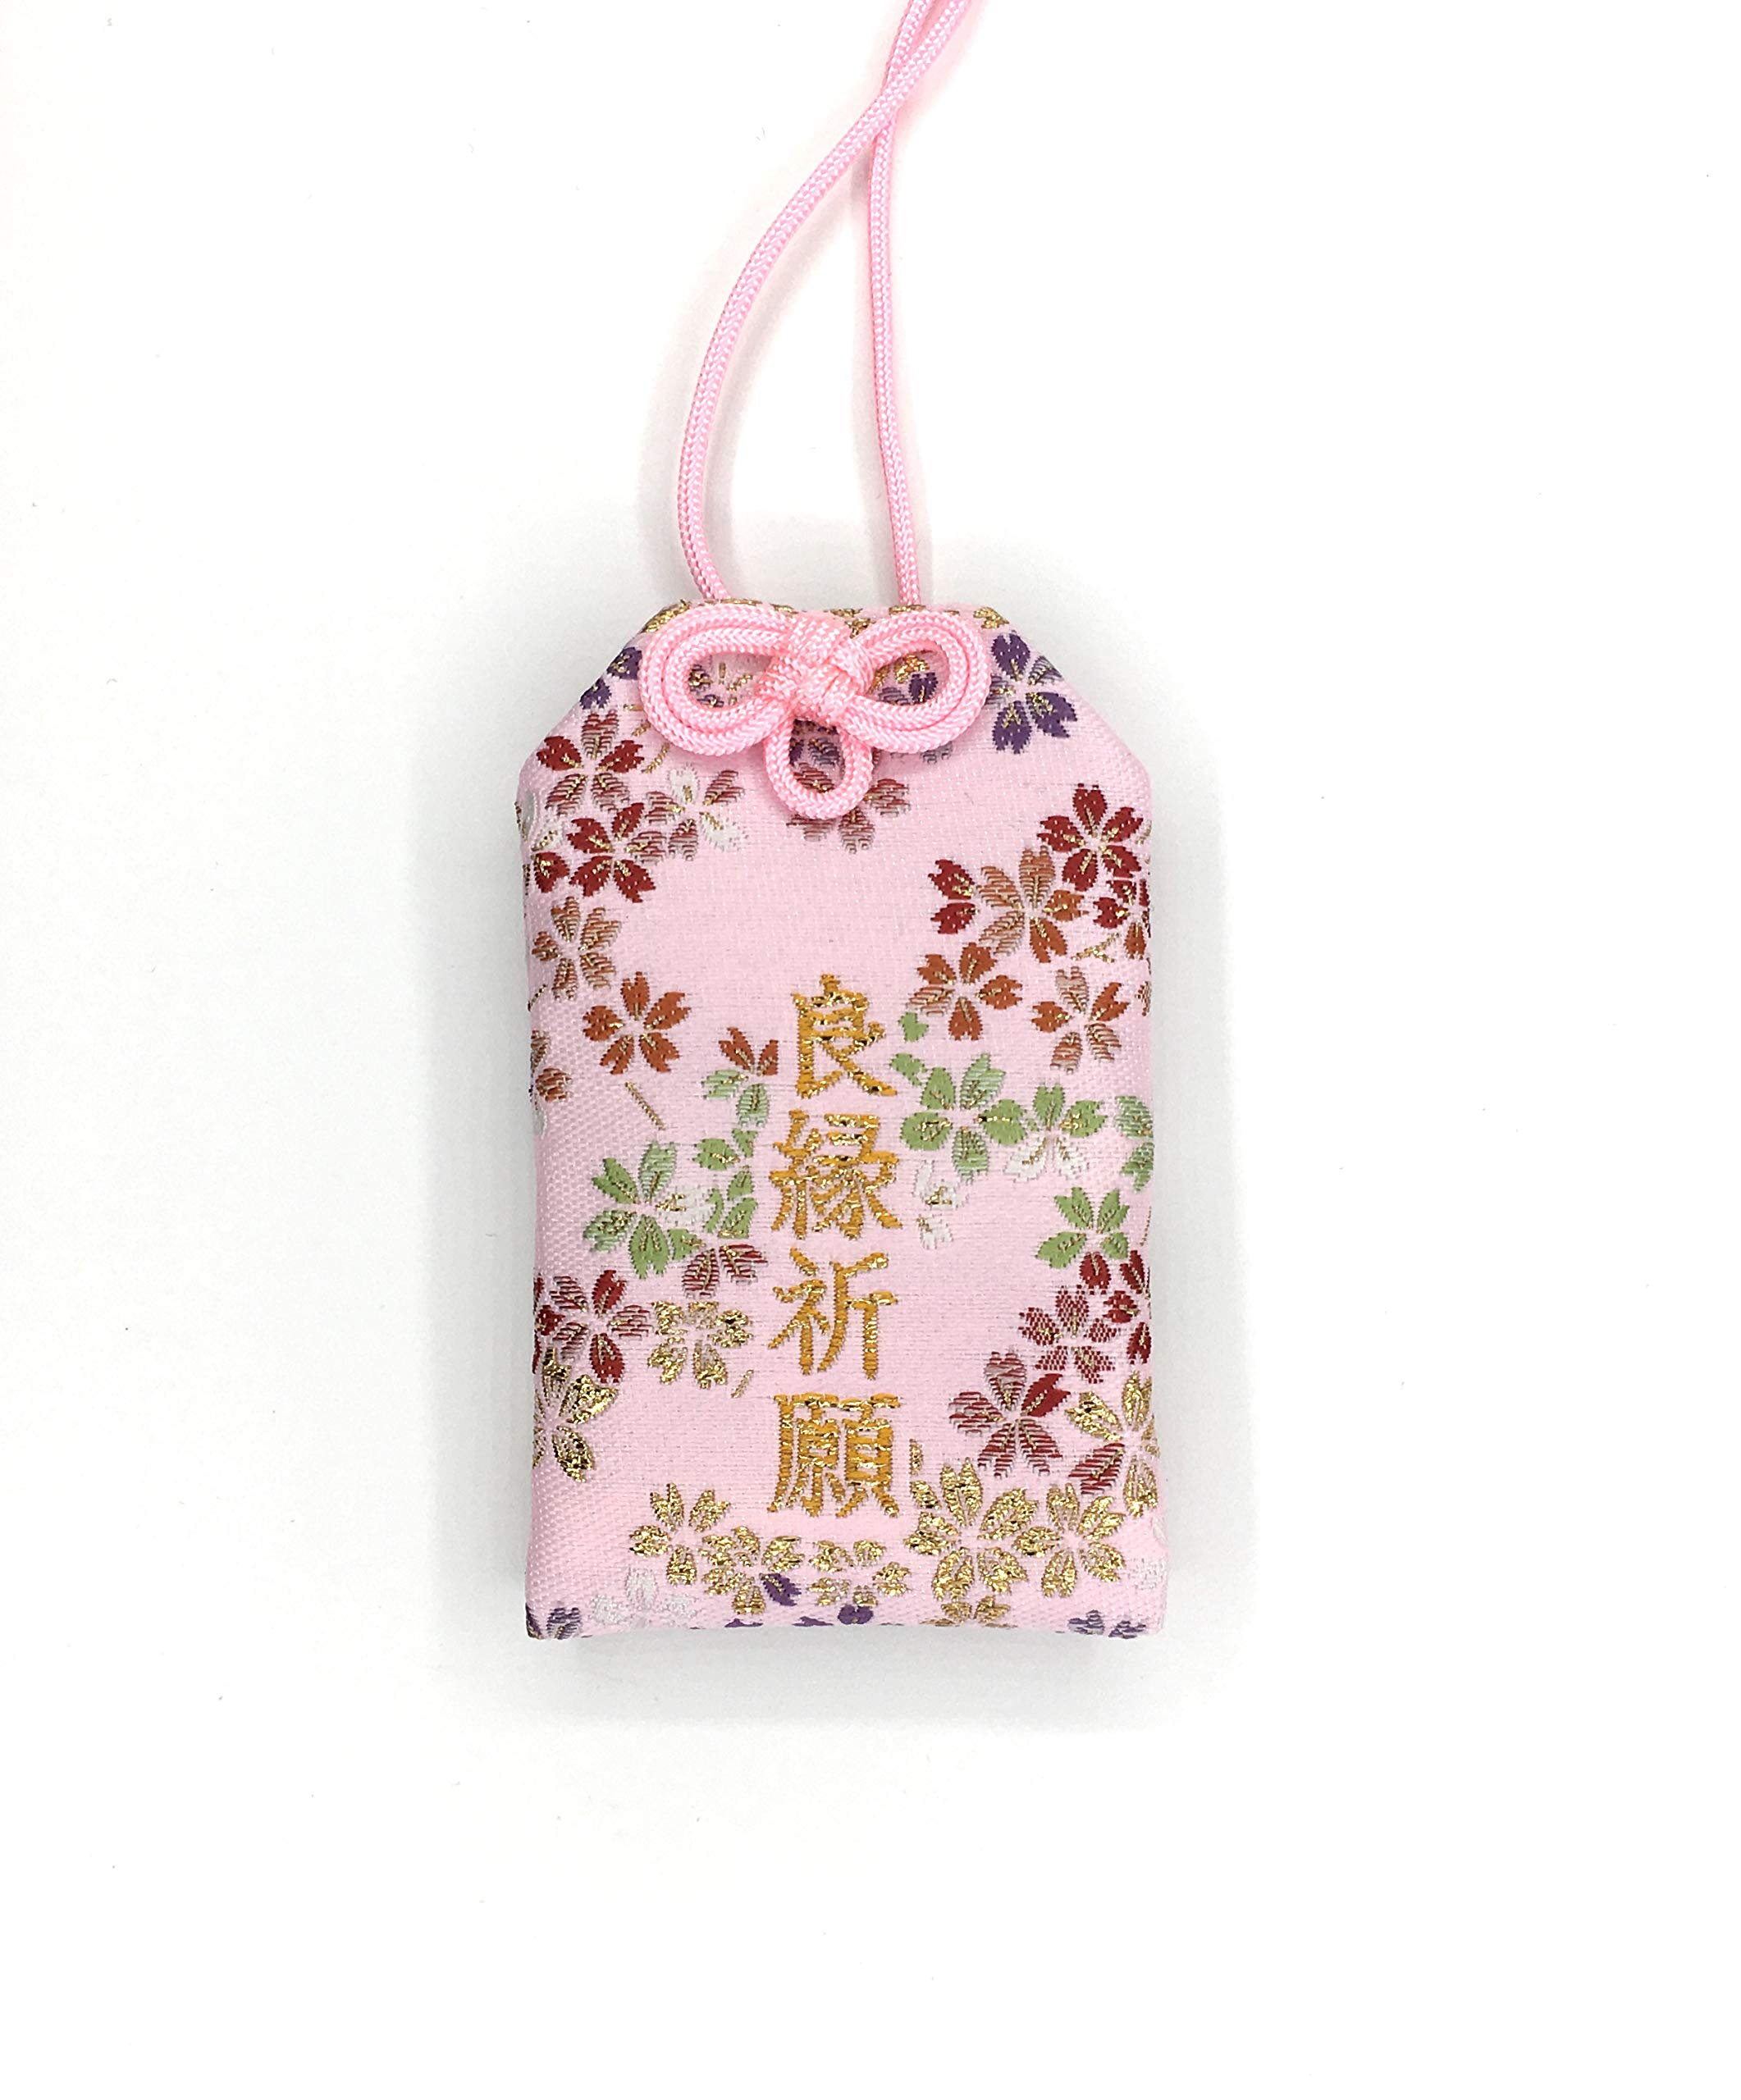 Japanese Omamori Amulet Lucky Charm Good Luck Charm for Good Match/Lucky in Love by Omamori-doh